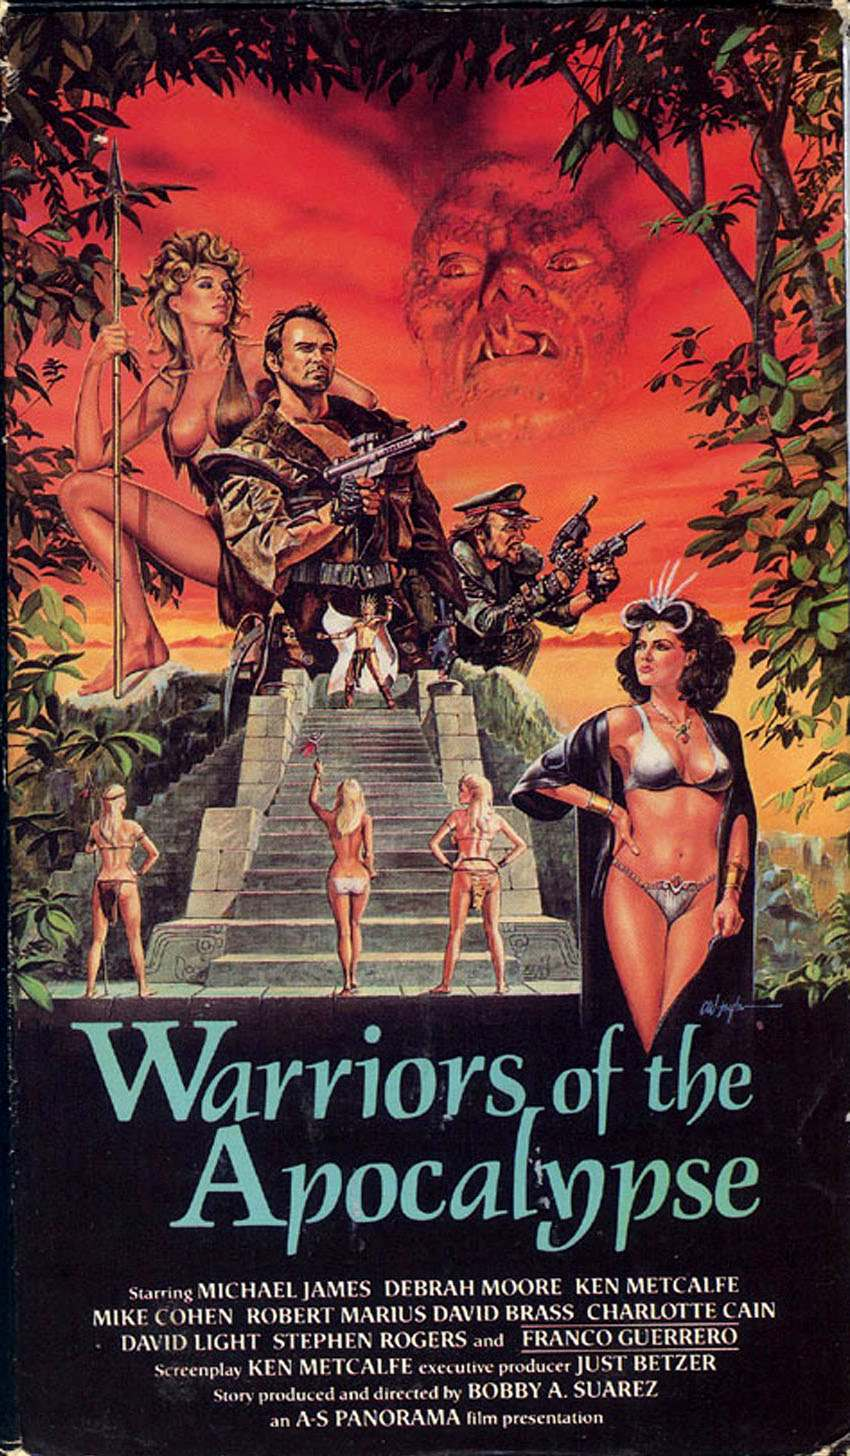 WARRIORS-OF-THE-APOVALYPSE(vhs wasteland)front